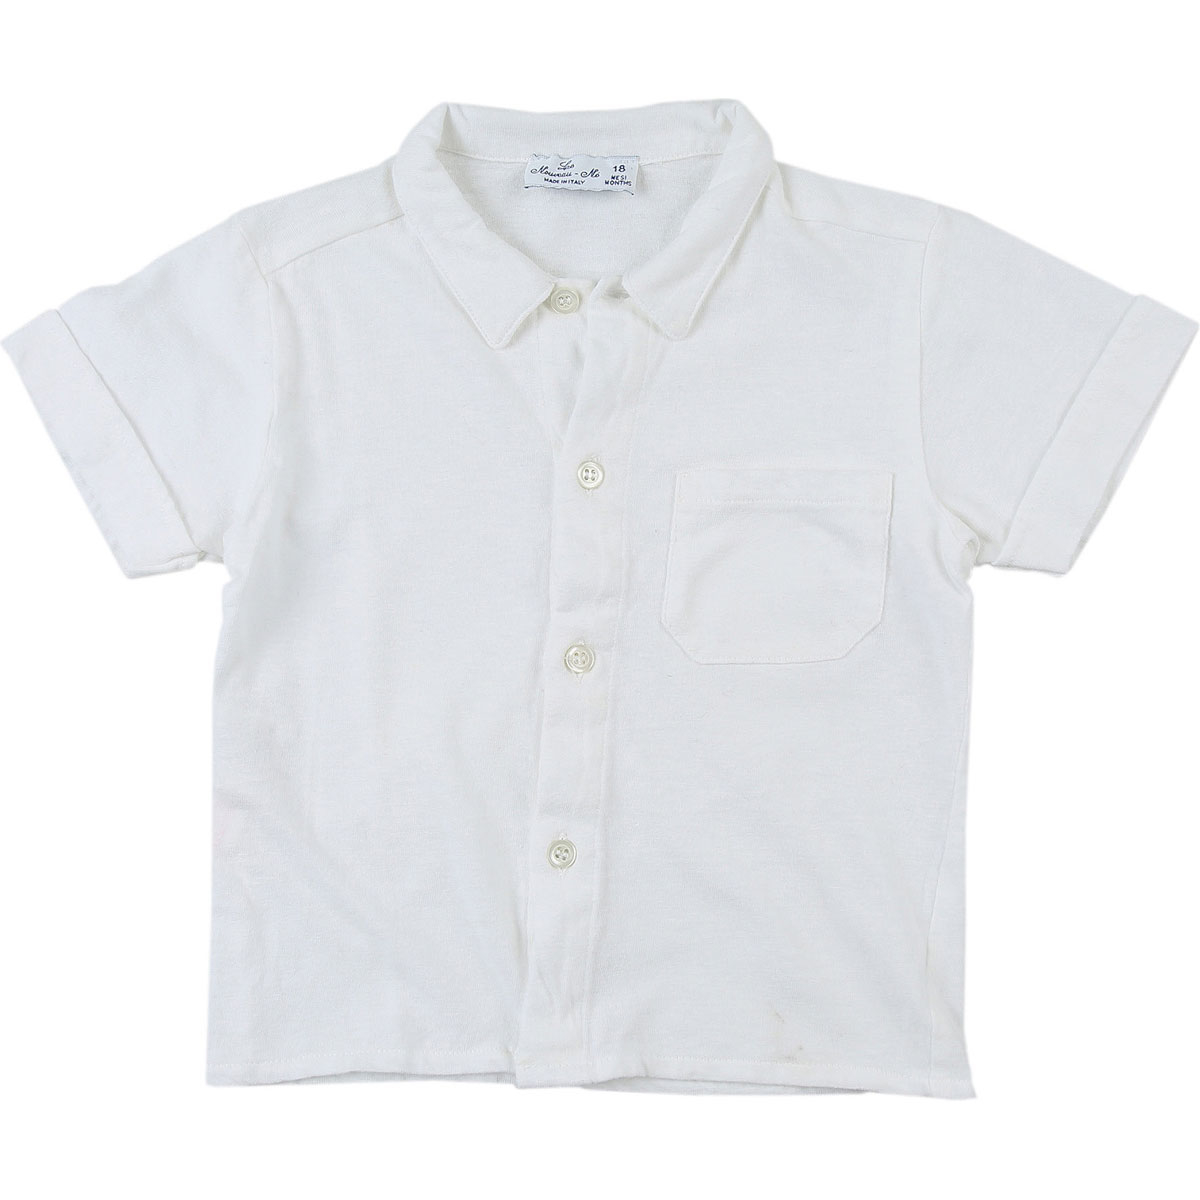 Le Nouveau Ne Baby Shirts for Boys On Sale in Outlet White DK - GOOFASH - Mens SHIRTS